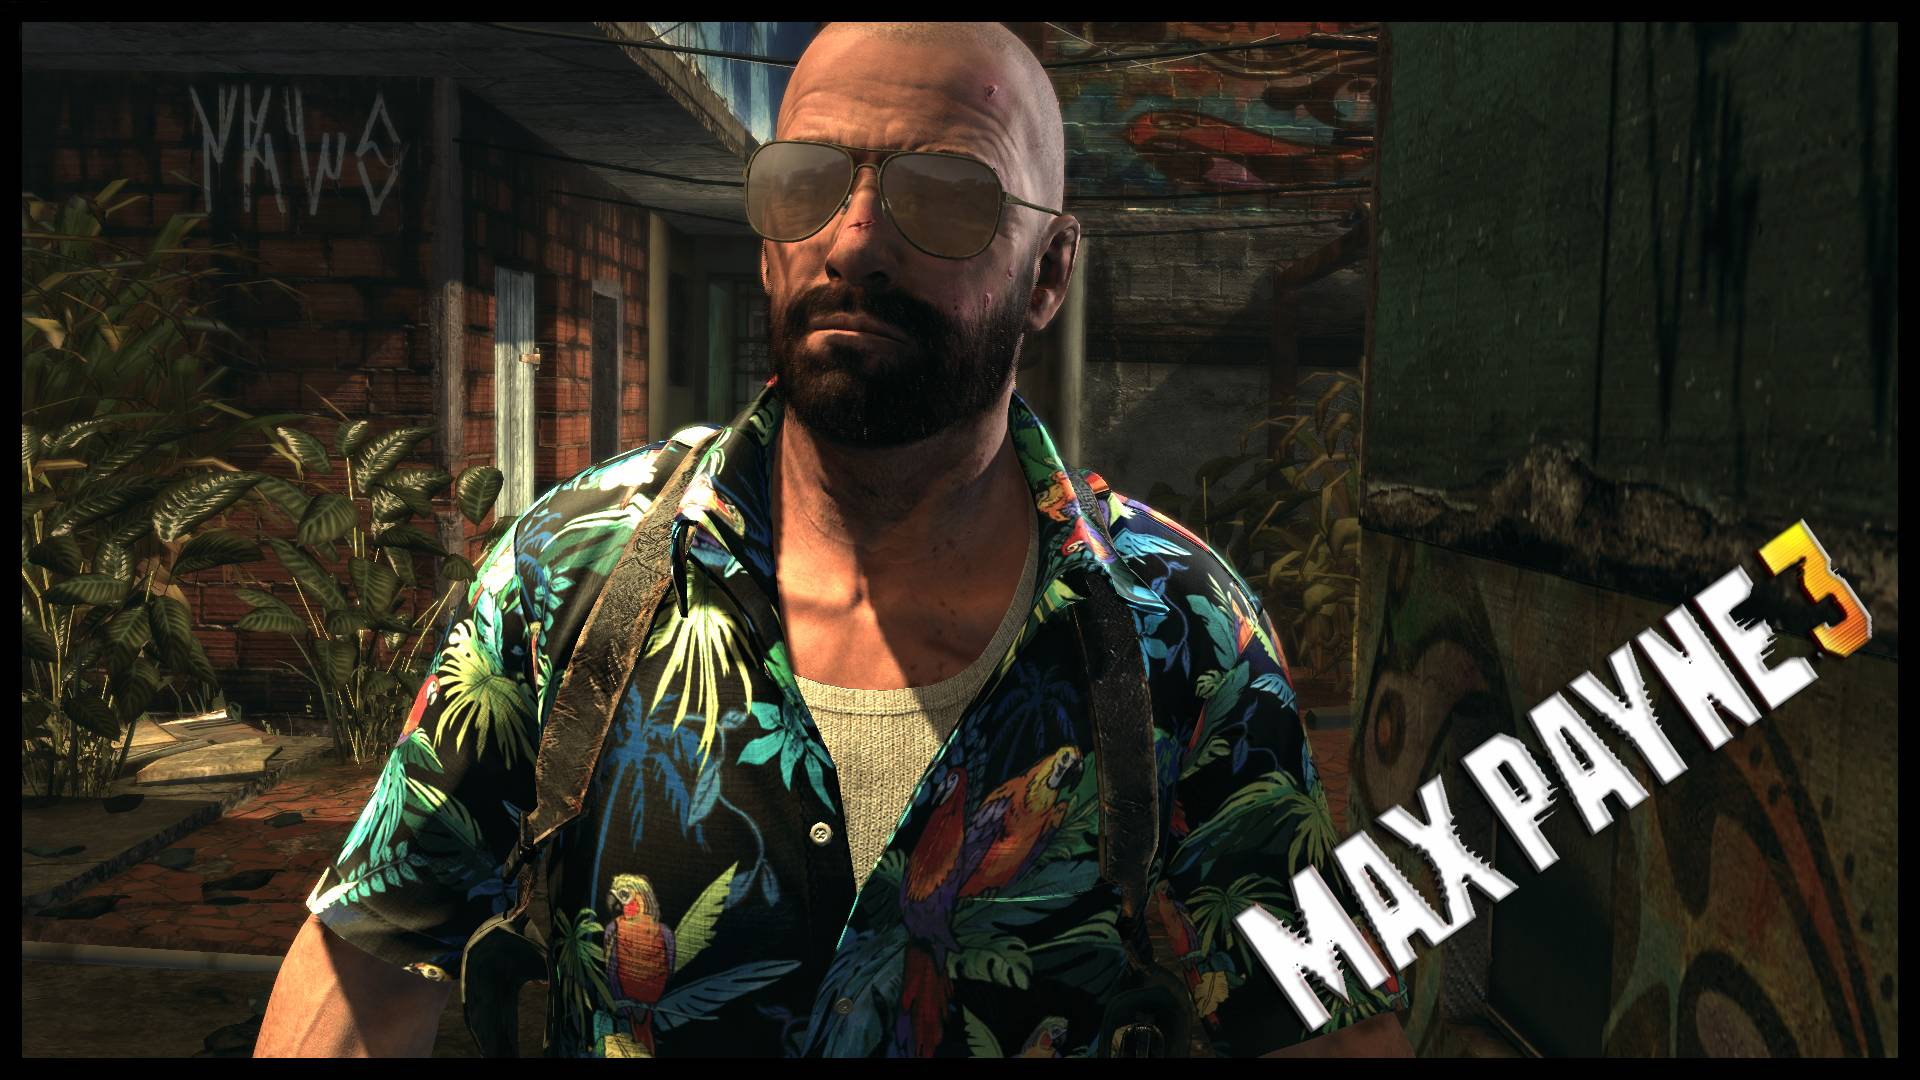 Free Download Hd Max Payne 3 Wallpaper Max Payne Wallpaper